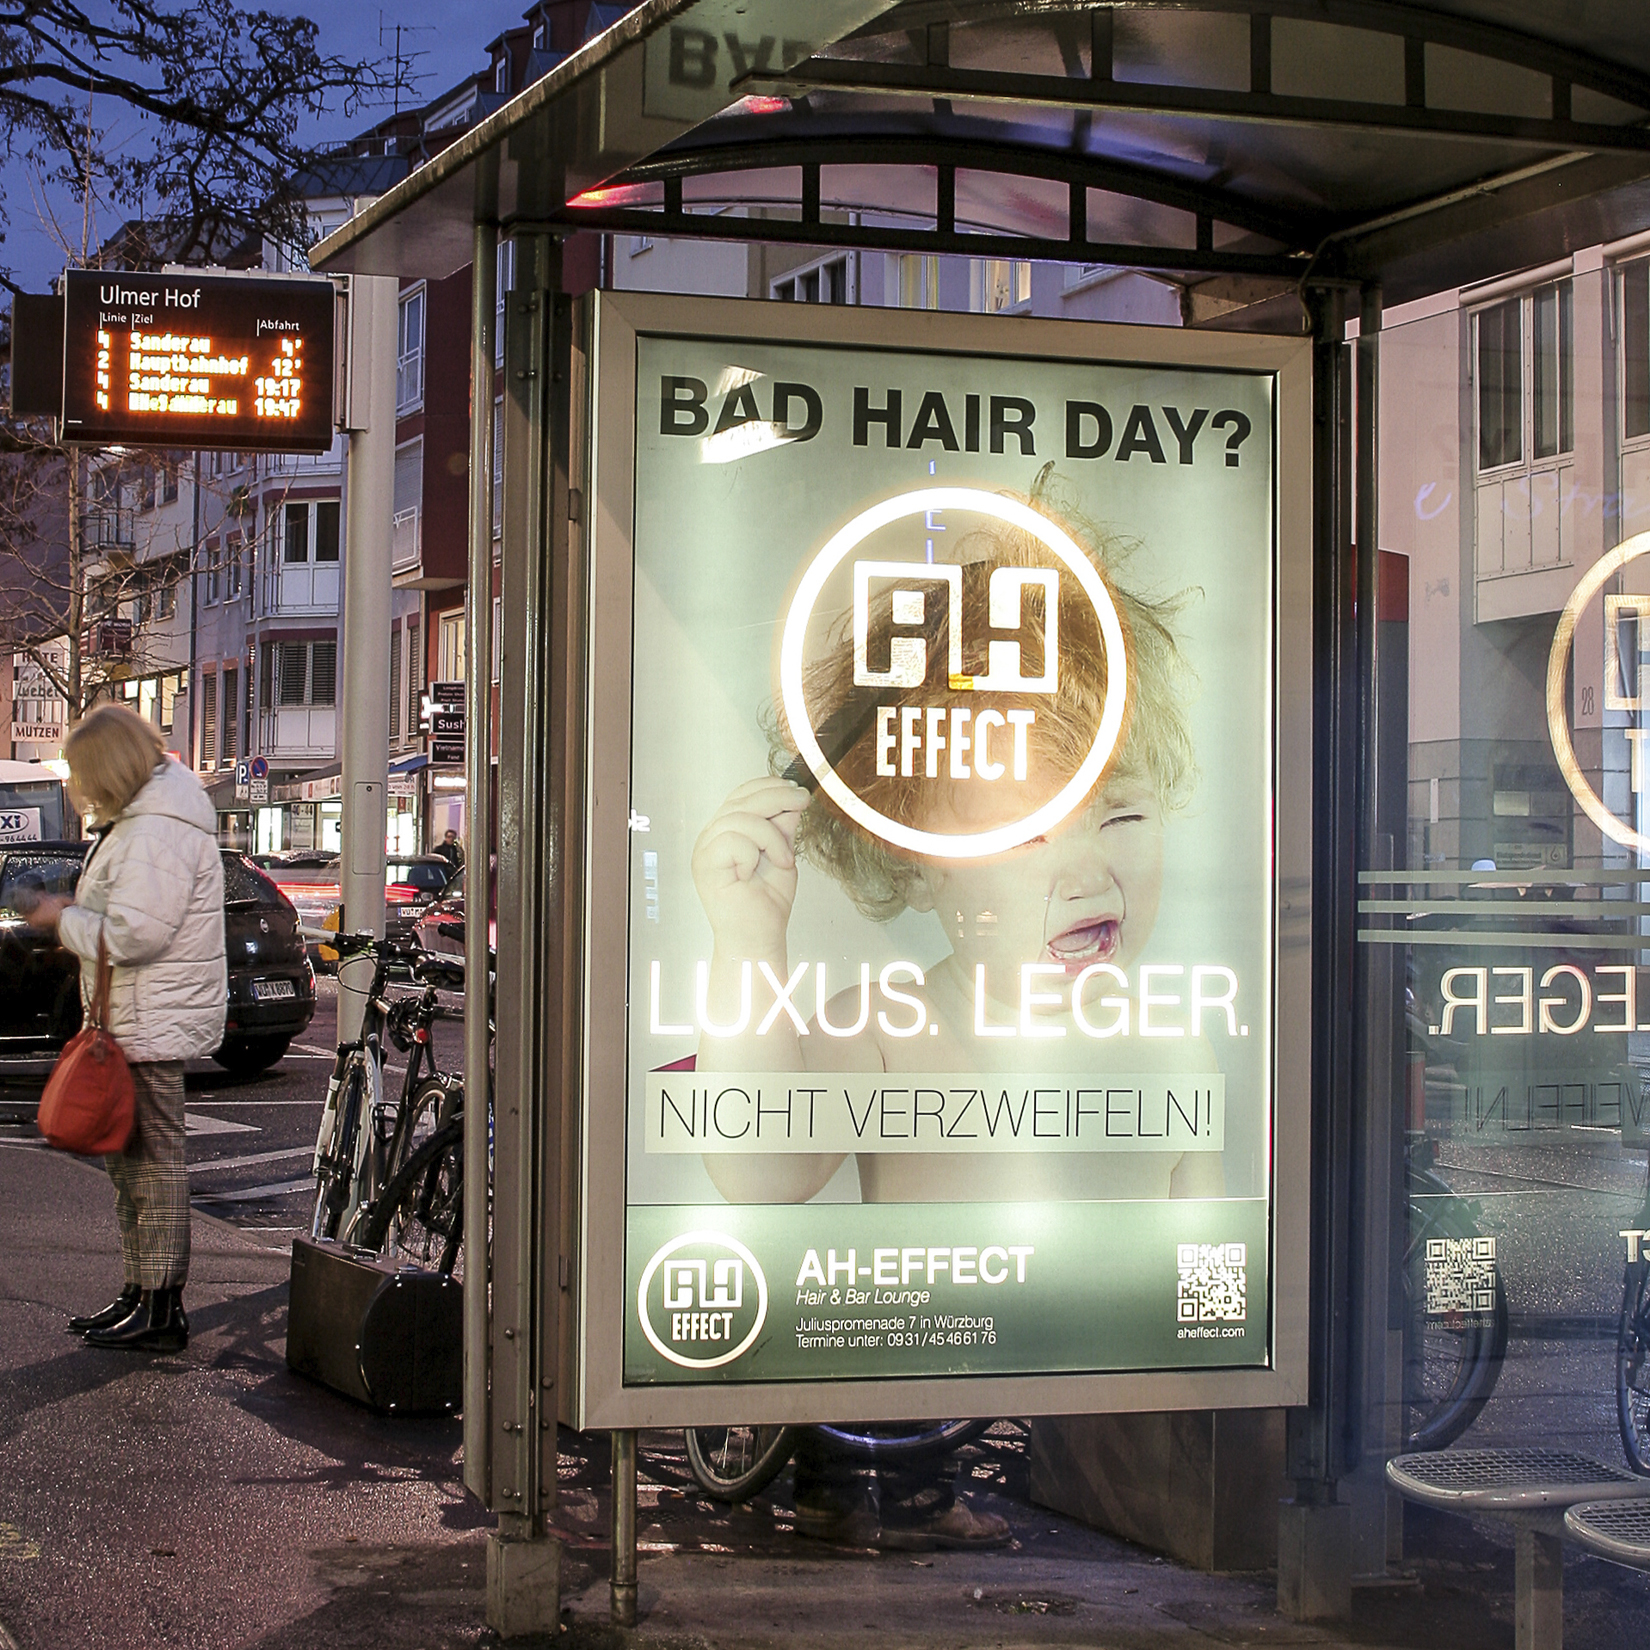 AH-Effect Friseur CityLight Kampagne German Design Award 2015 Würzburg